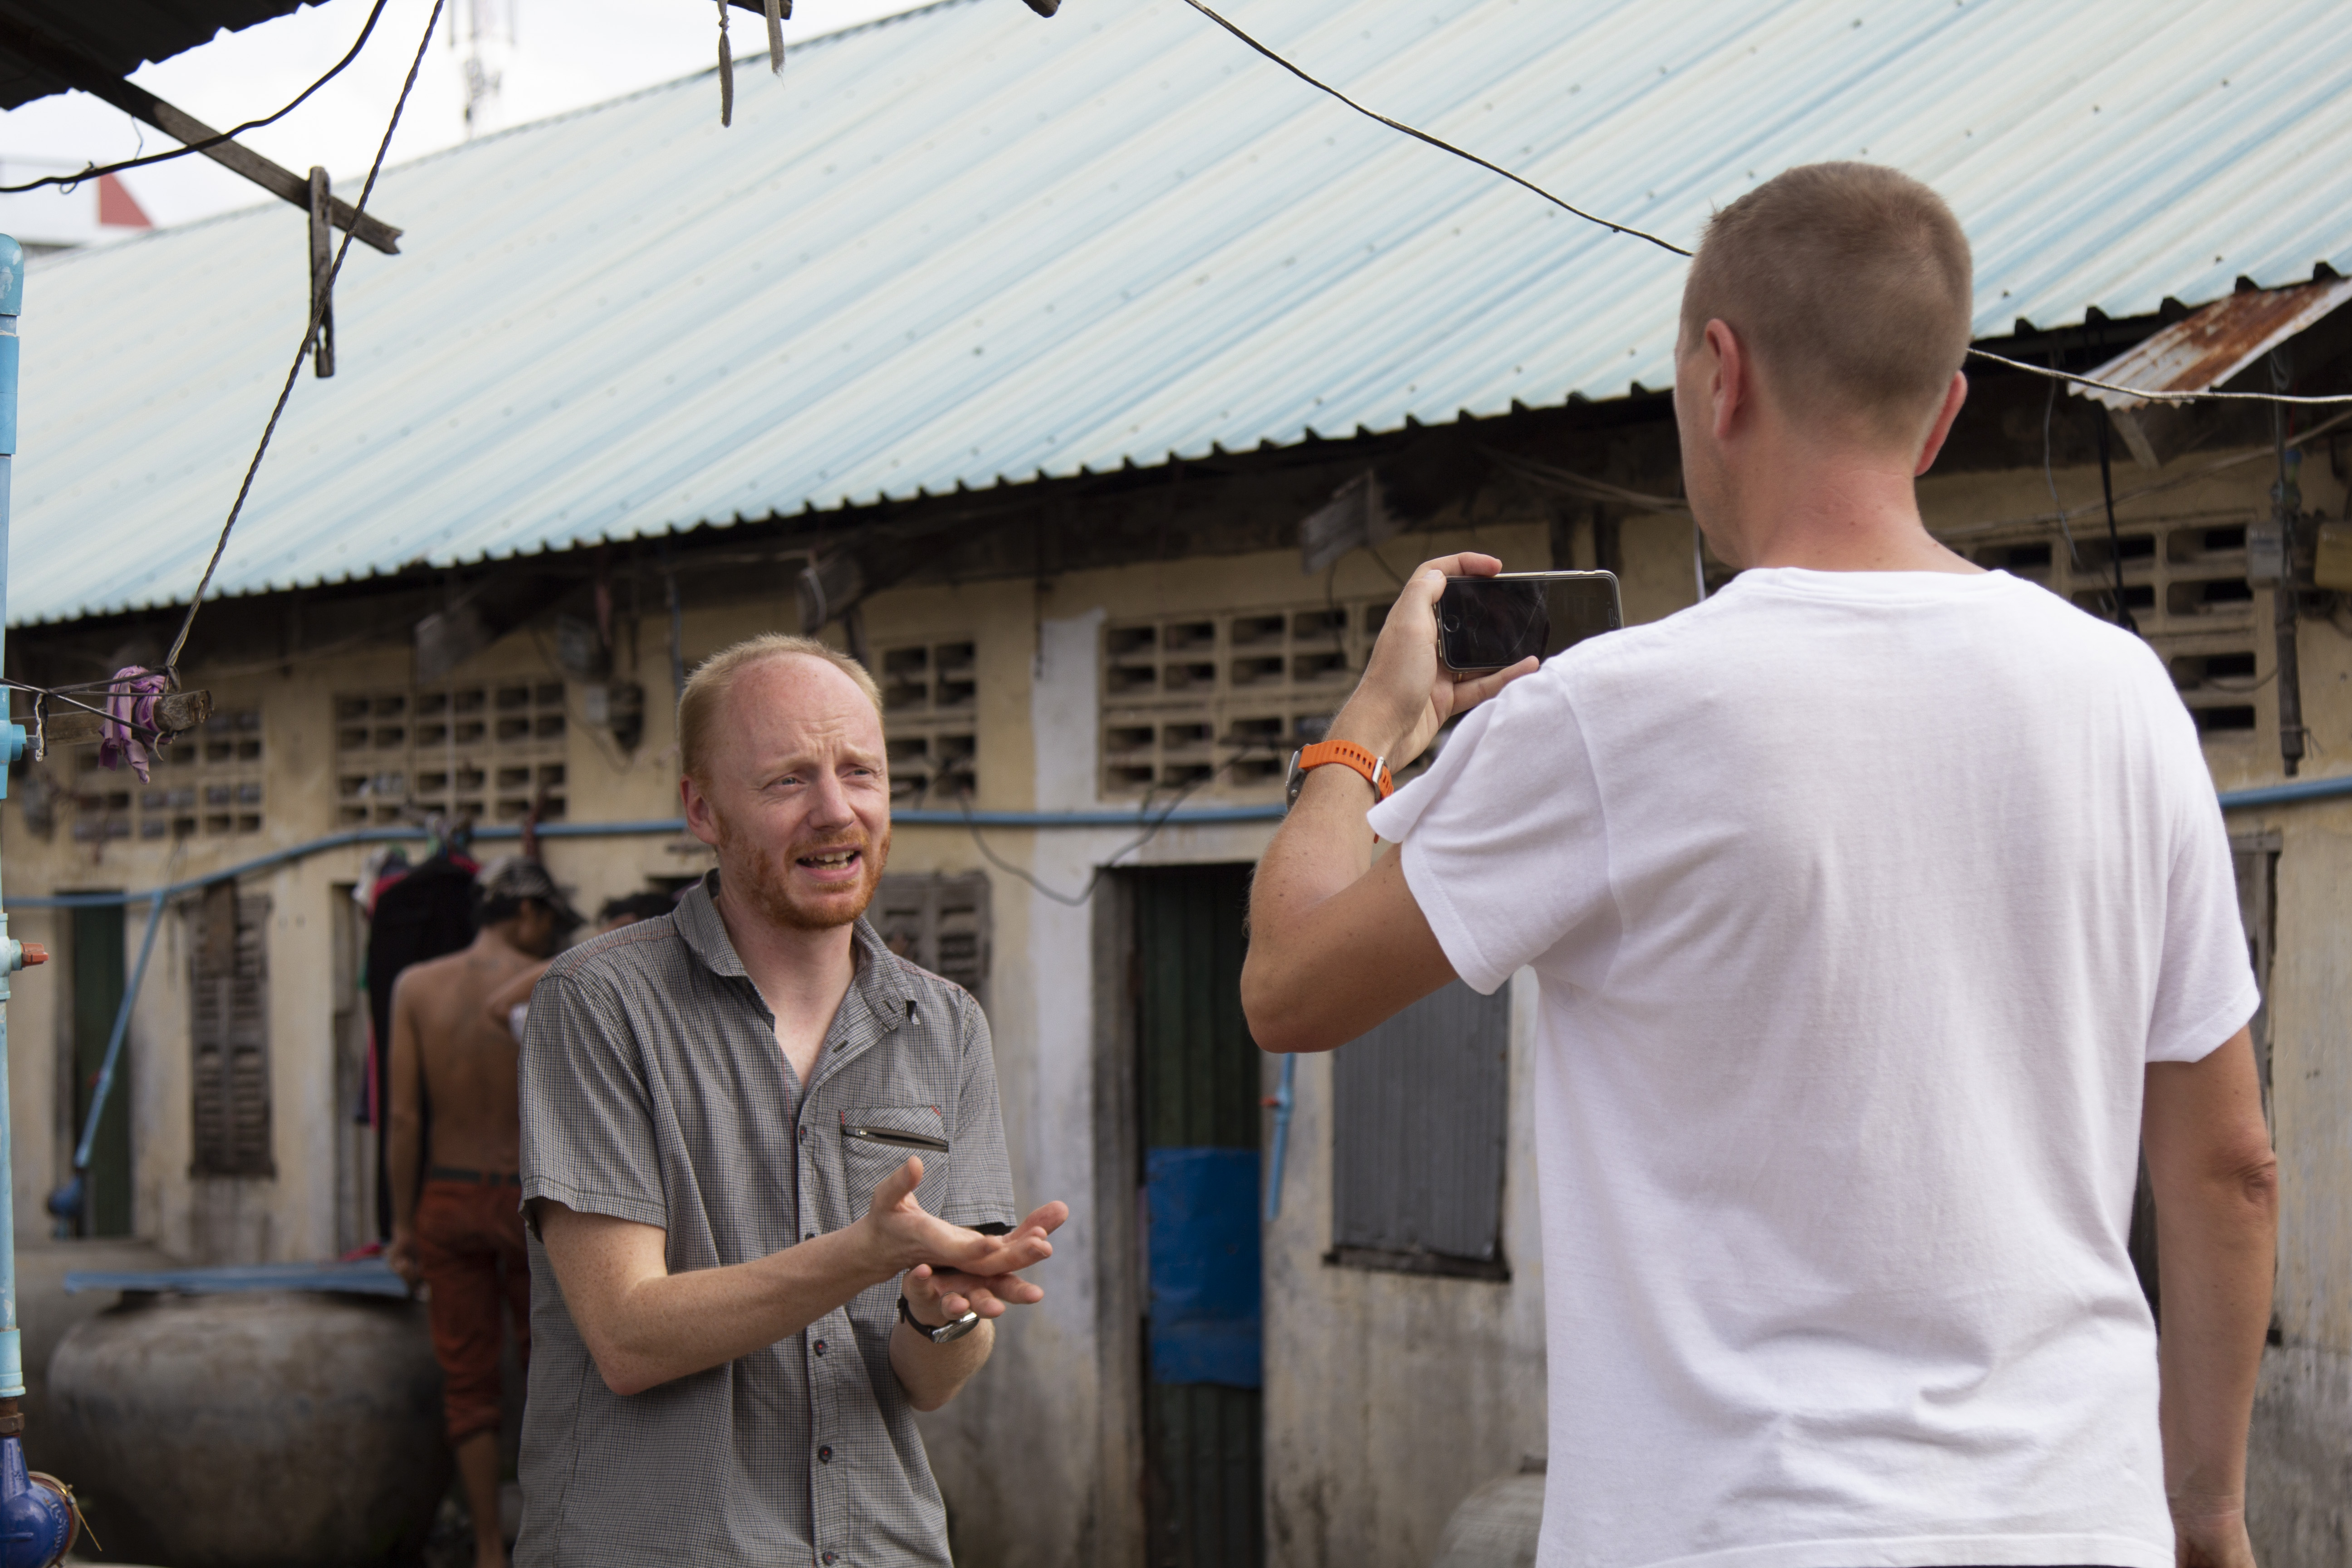 Interview with media, life of informal workers in Cambodia